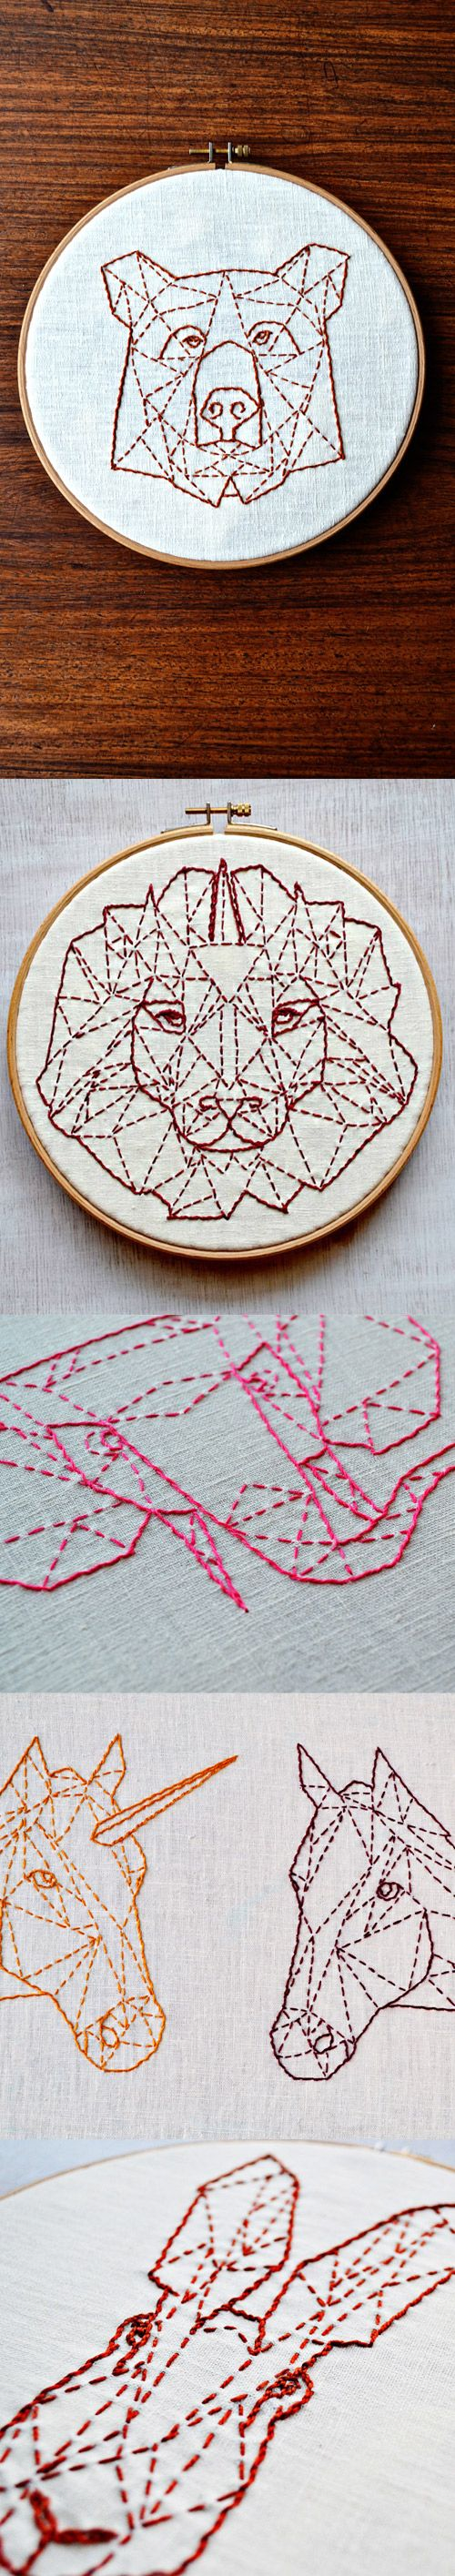 modern embroidery pattern: geometric animals by Pumora